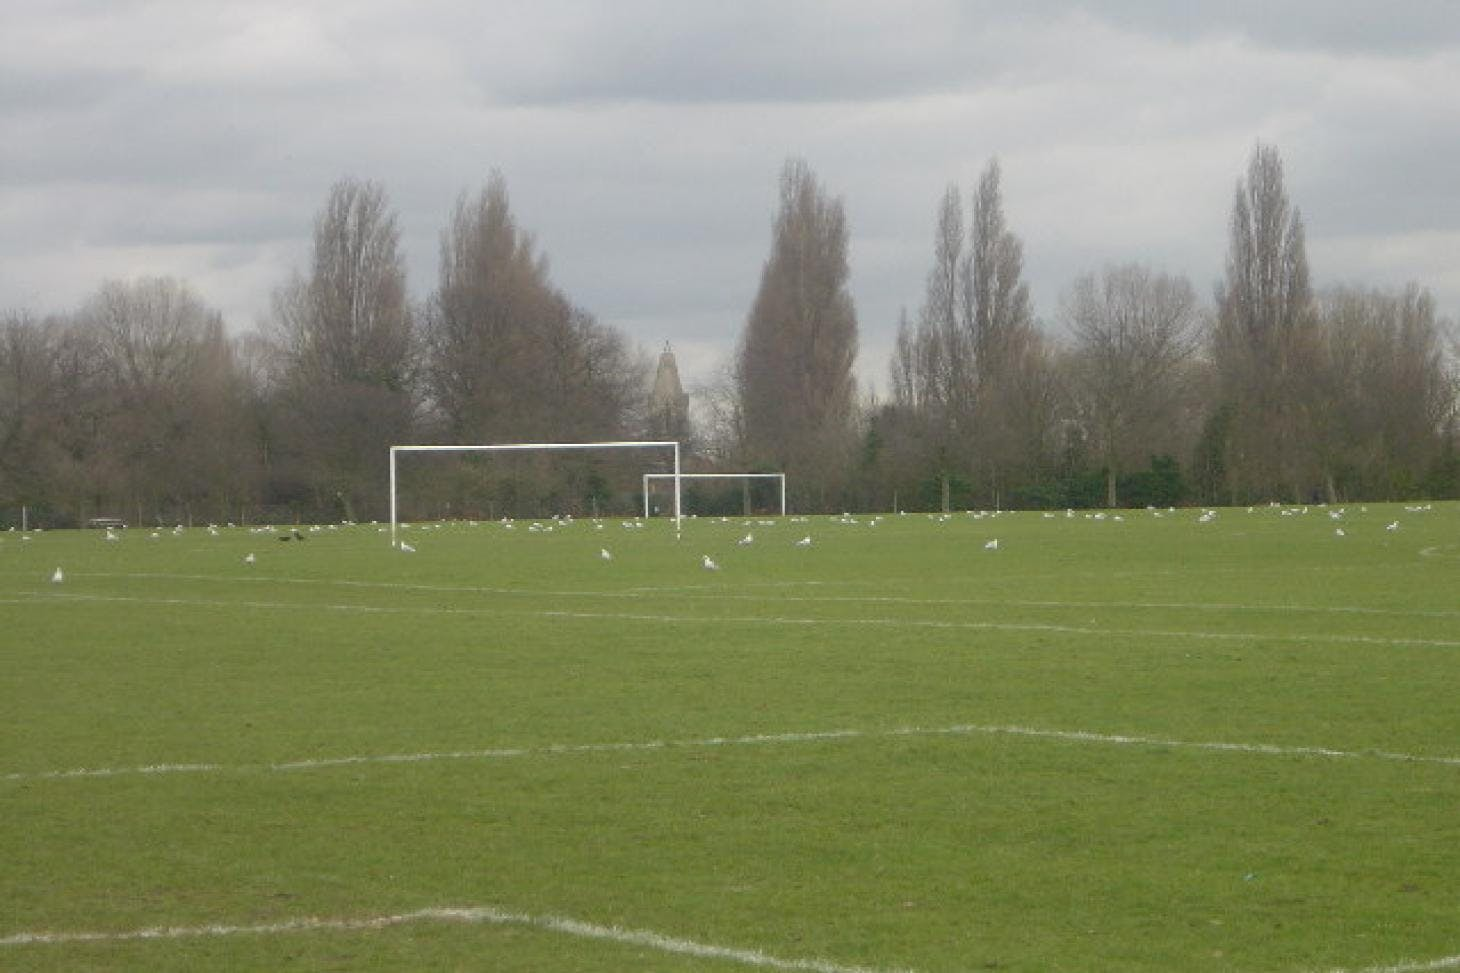 Sir Joseph Hood Memorial Playing Fields 11 a side | Grass football pitch